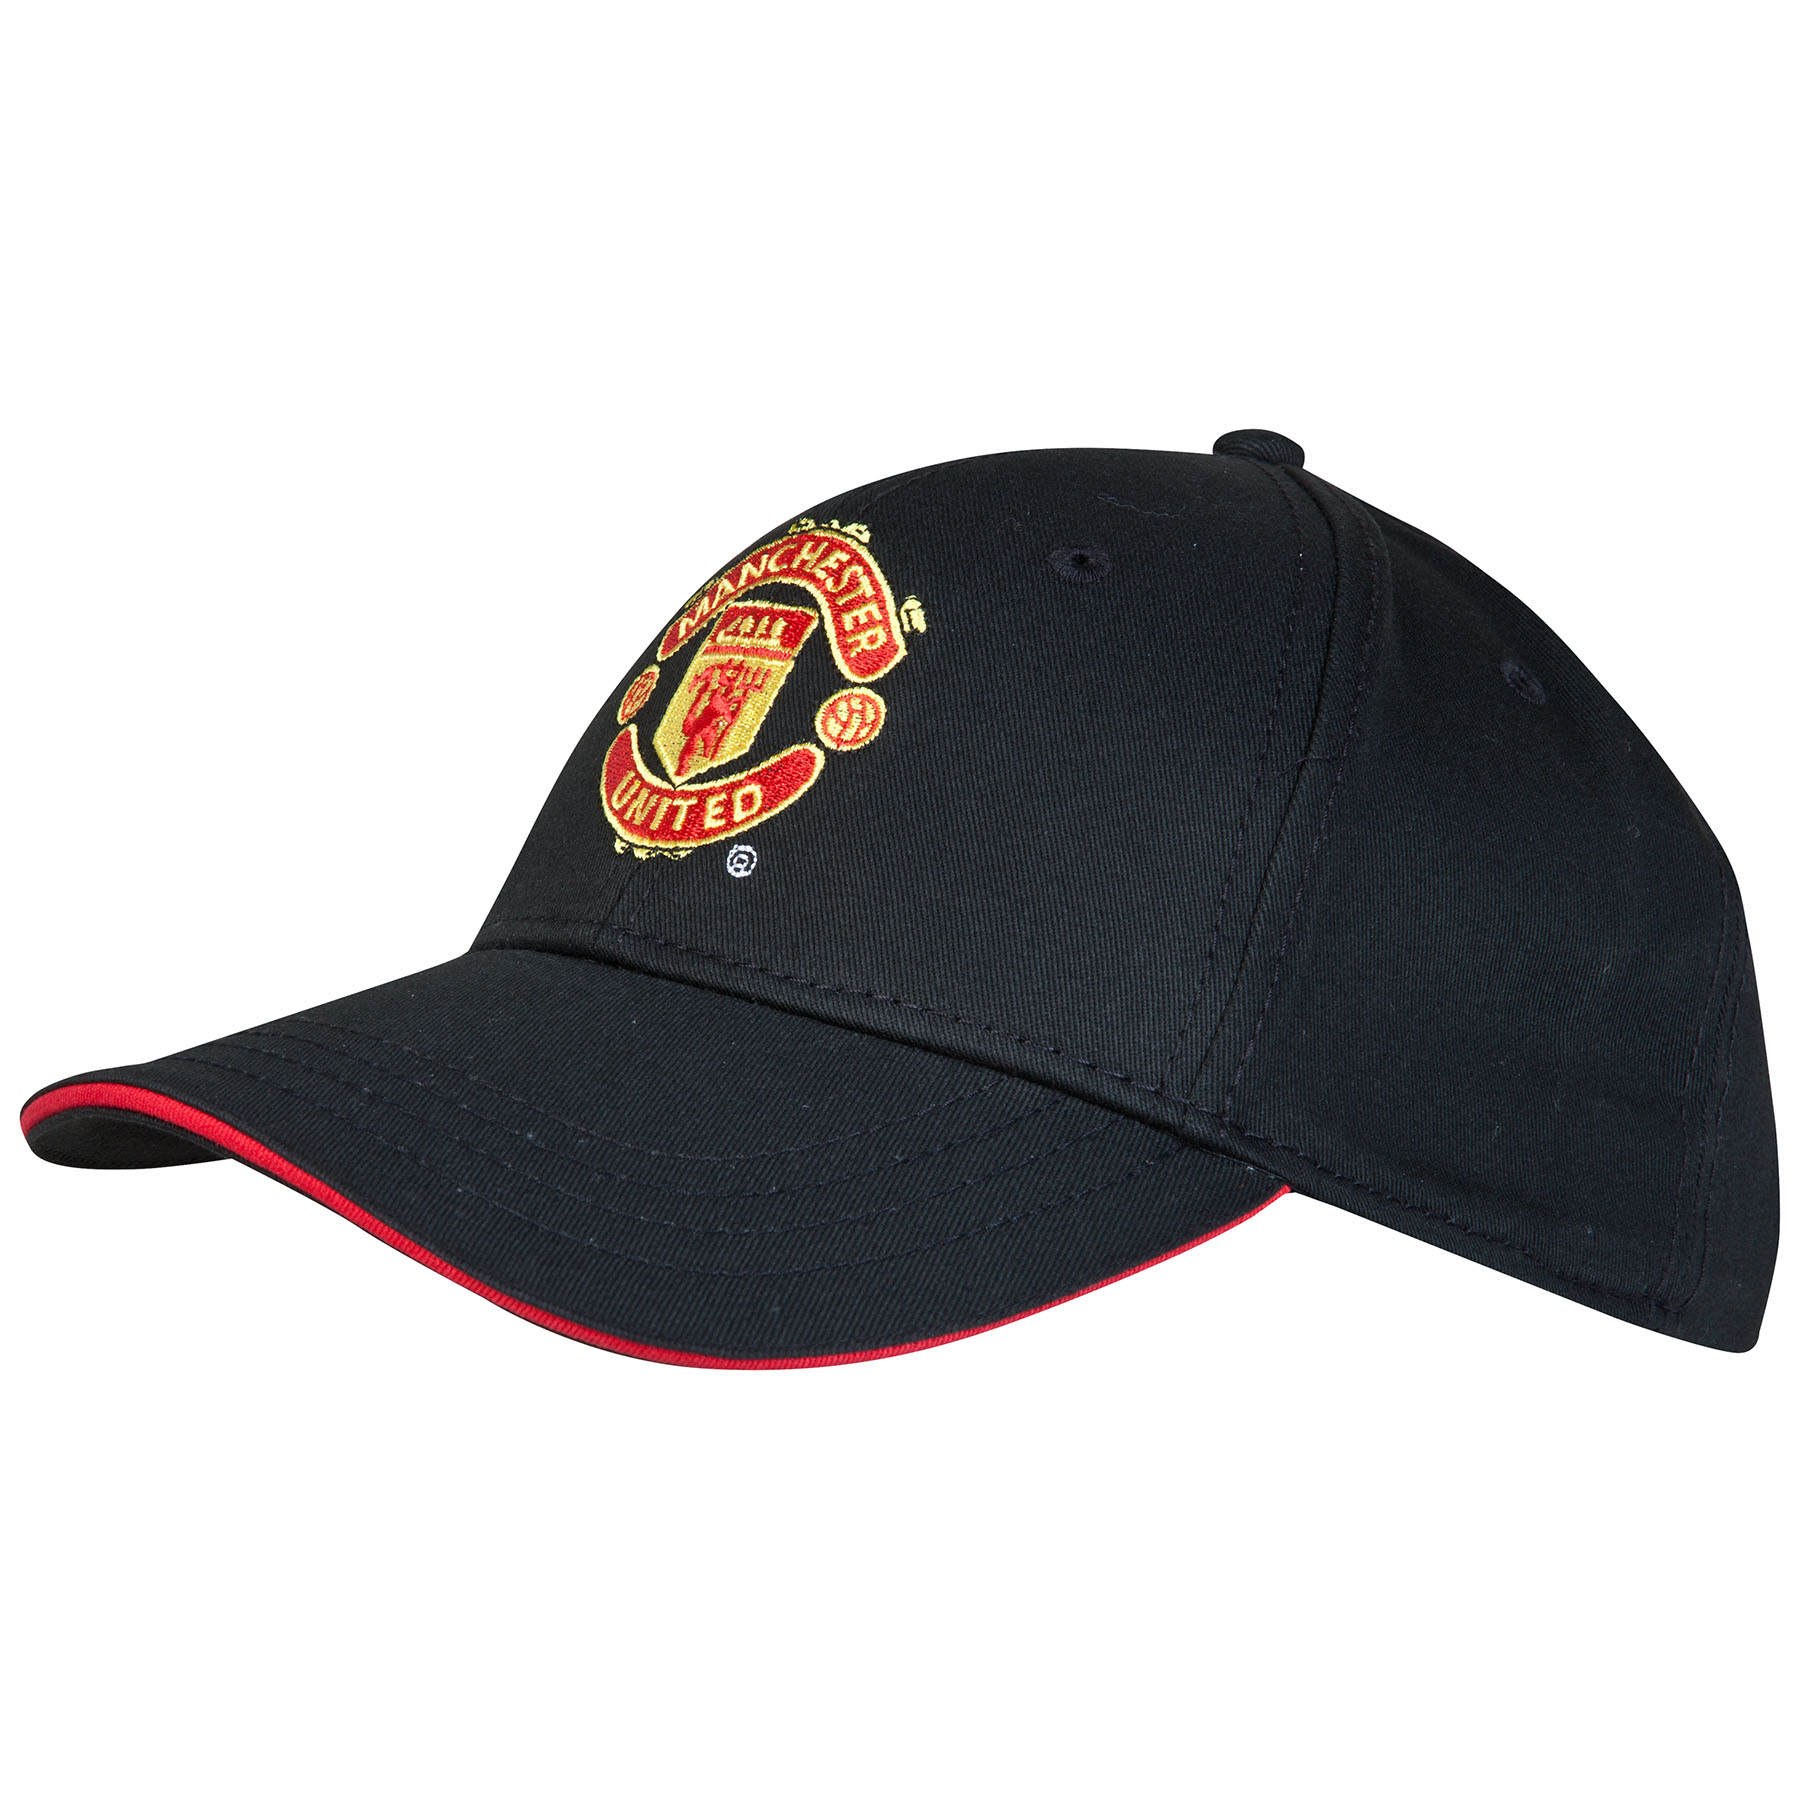 Manchester United Core Crest Cap - Black - Adult